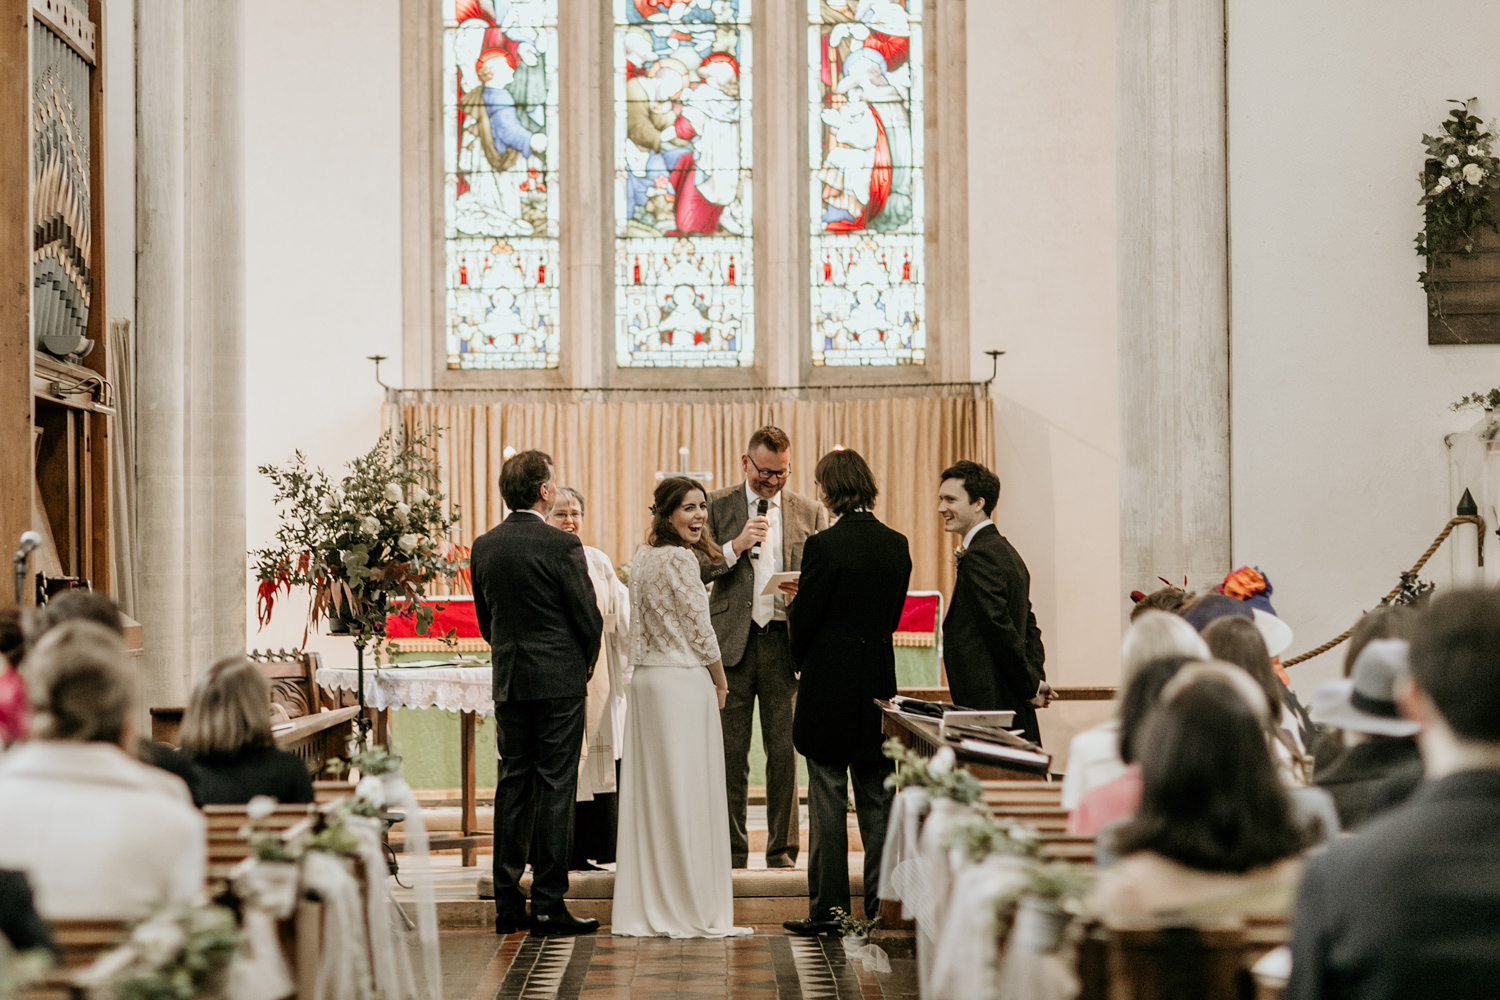 church wedding ceremony at Stroud by Cotswolds wedding photographers